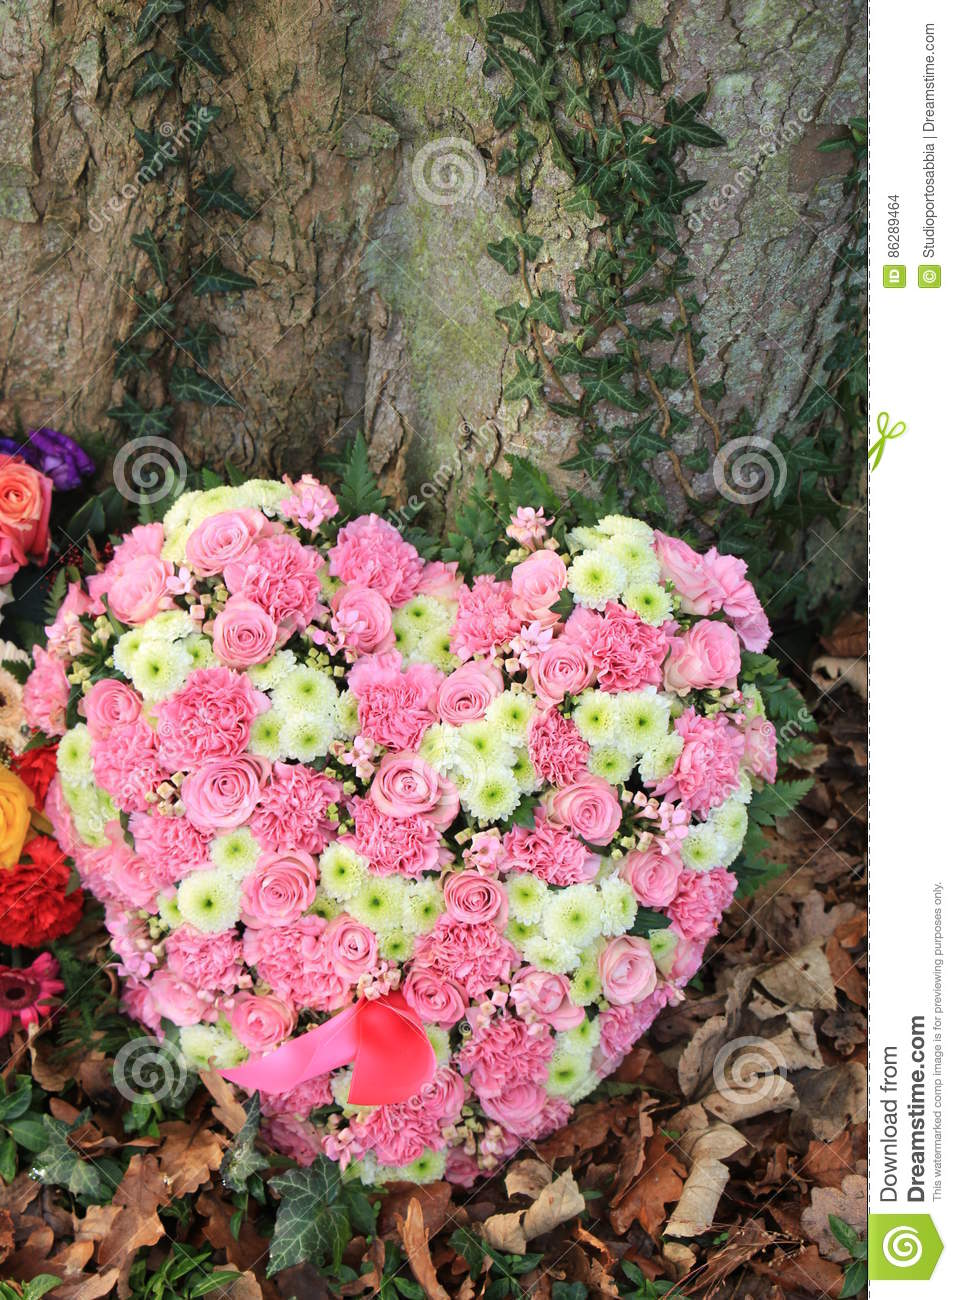 Heart shaped sympathy flowers stock photo image of funeral download heart shaped sympathy flowers stock photo image of funeral cemetery 86289464 izmirmasajfo